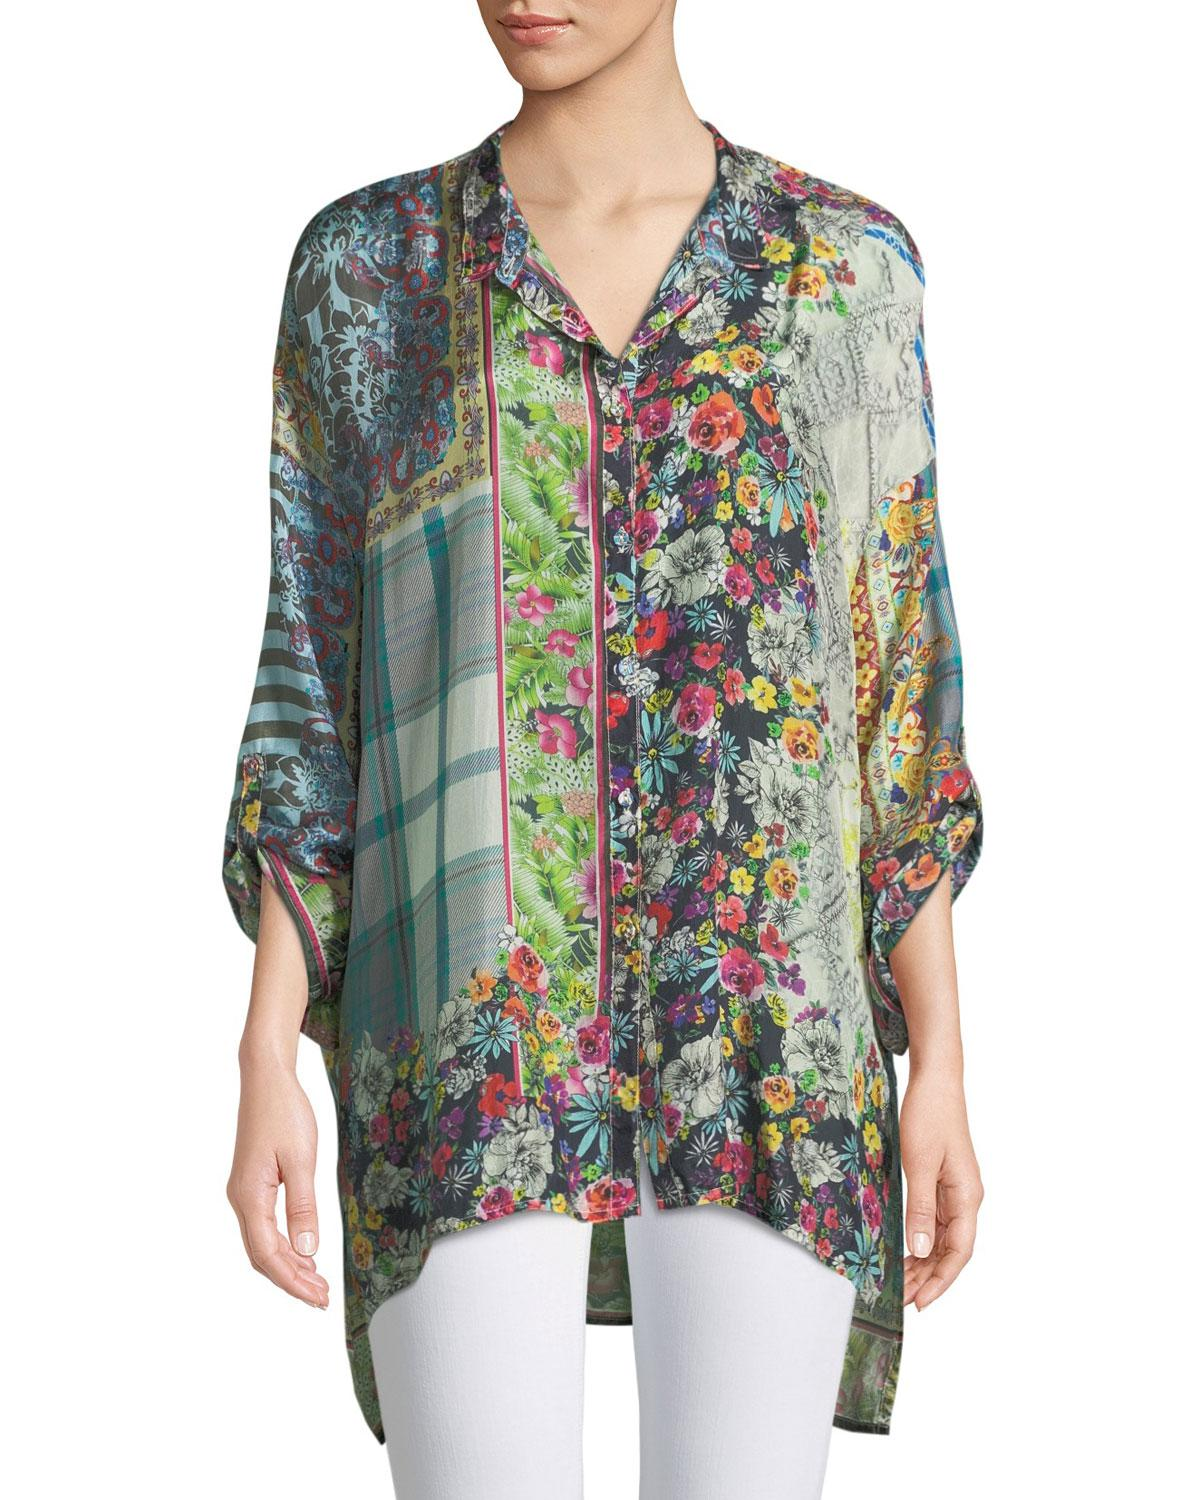 Johnny Was Invita Georgette Printed Button-front Blouse - Lyst